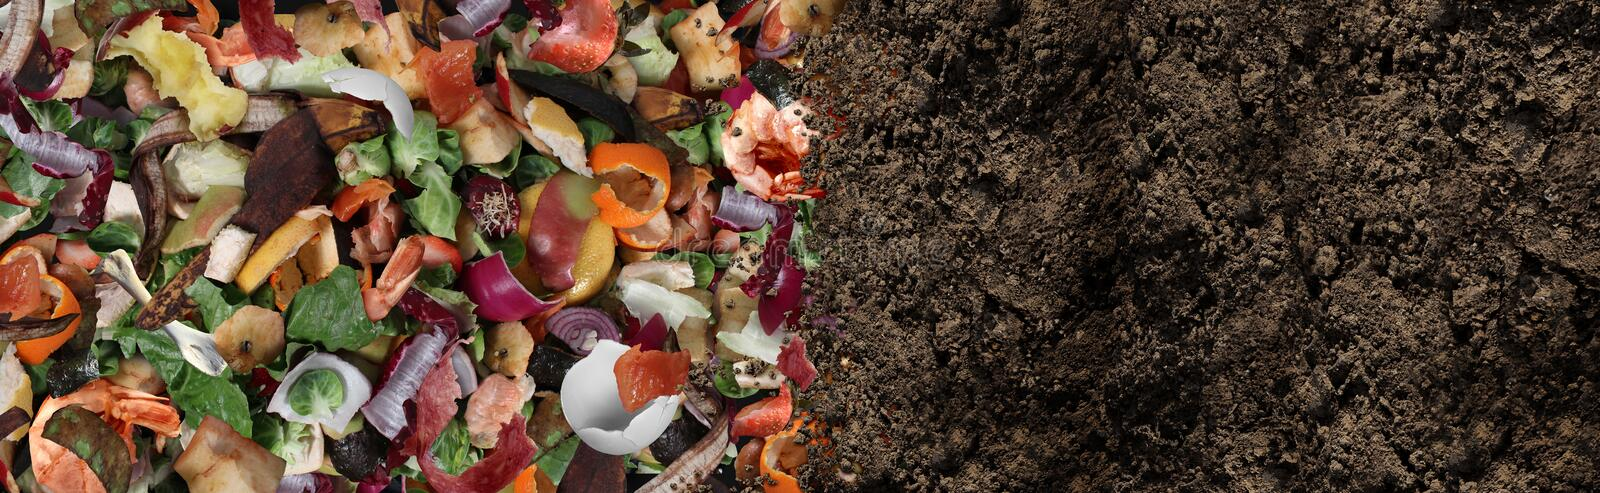 Compost And Composted Soil. As a composting pile of rotting kitchen scraps with fruits and vegetable garbage waste turning into organic fertilizer earth as a stock images